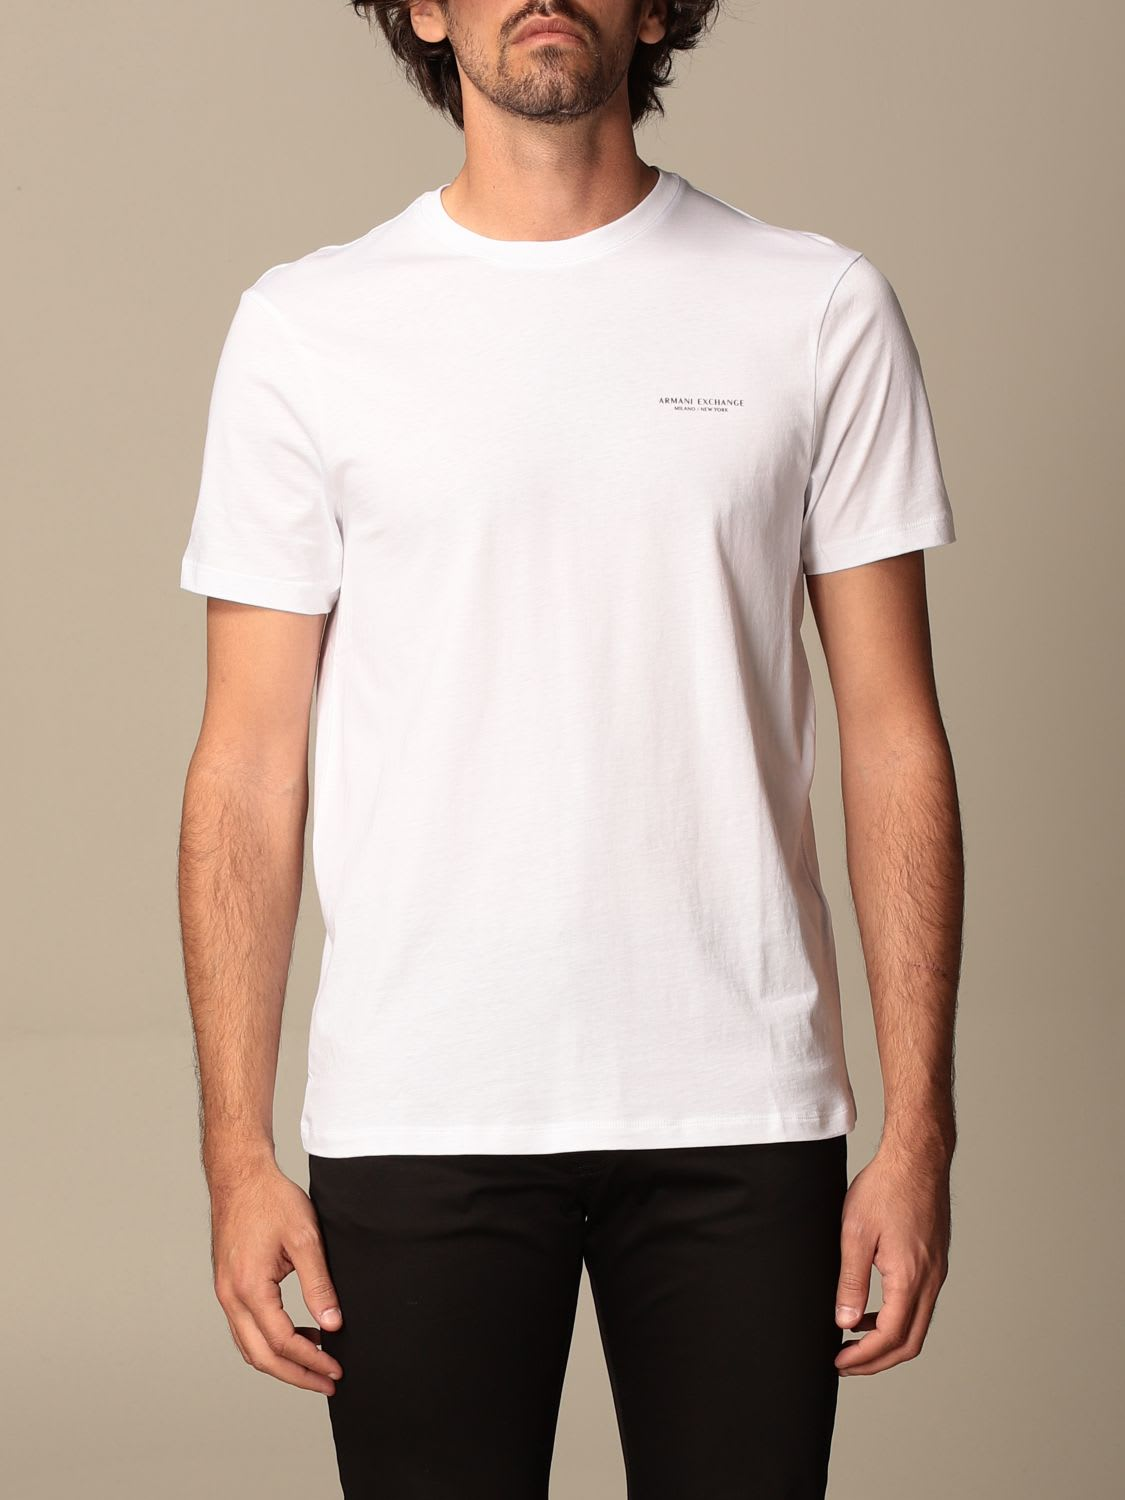 Armani Exchange T-shirt Armani Exchange T-shirt With Logo